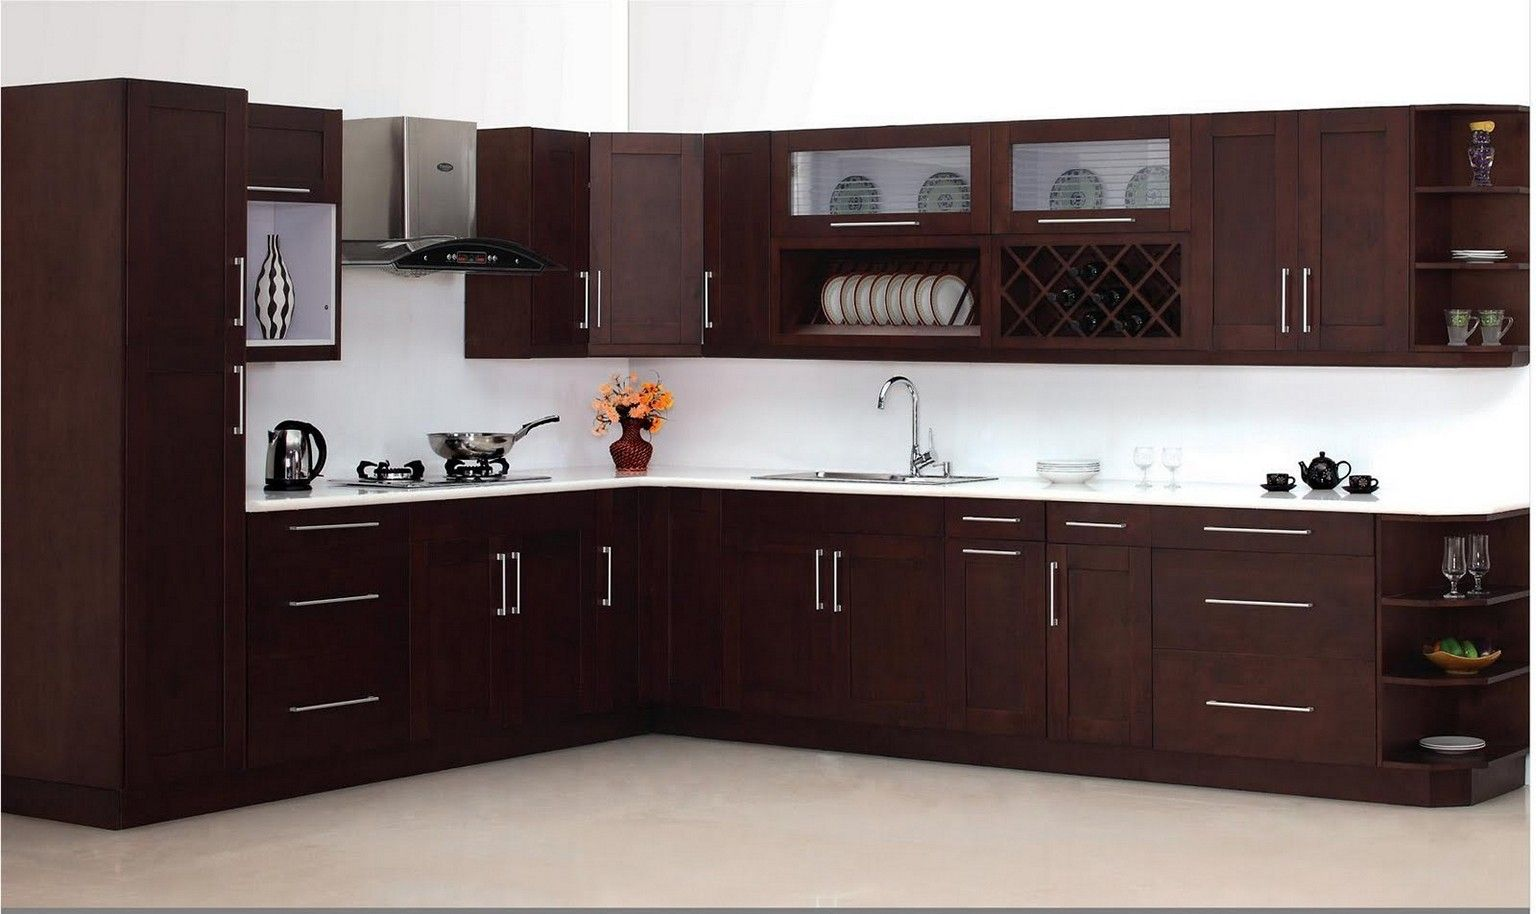 9 Outstanding Kitchen Cabinet Design Ideas   TheAppside   Custom ...